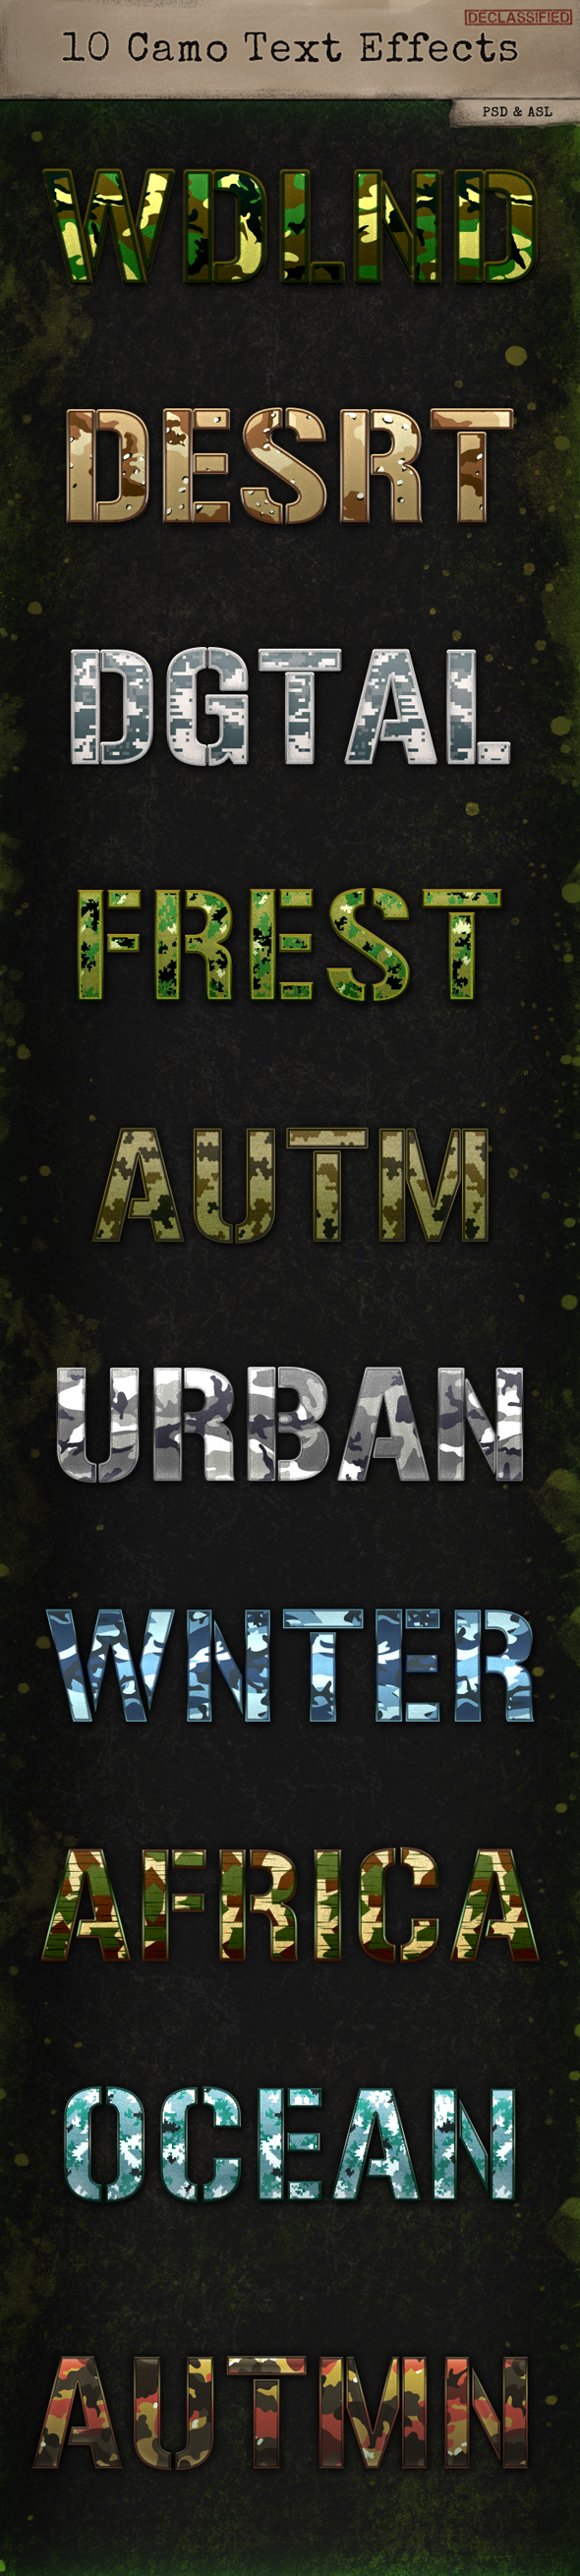 10 Camo Text Effects - Text Effects Styles